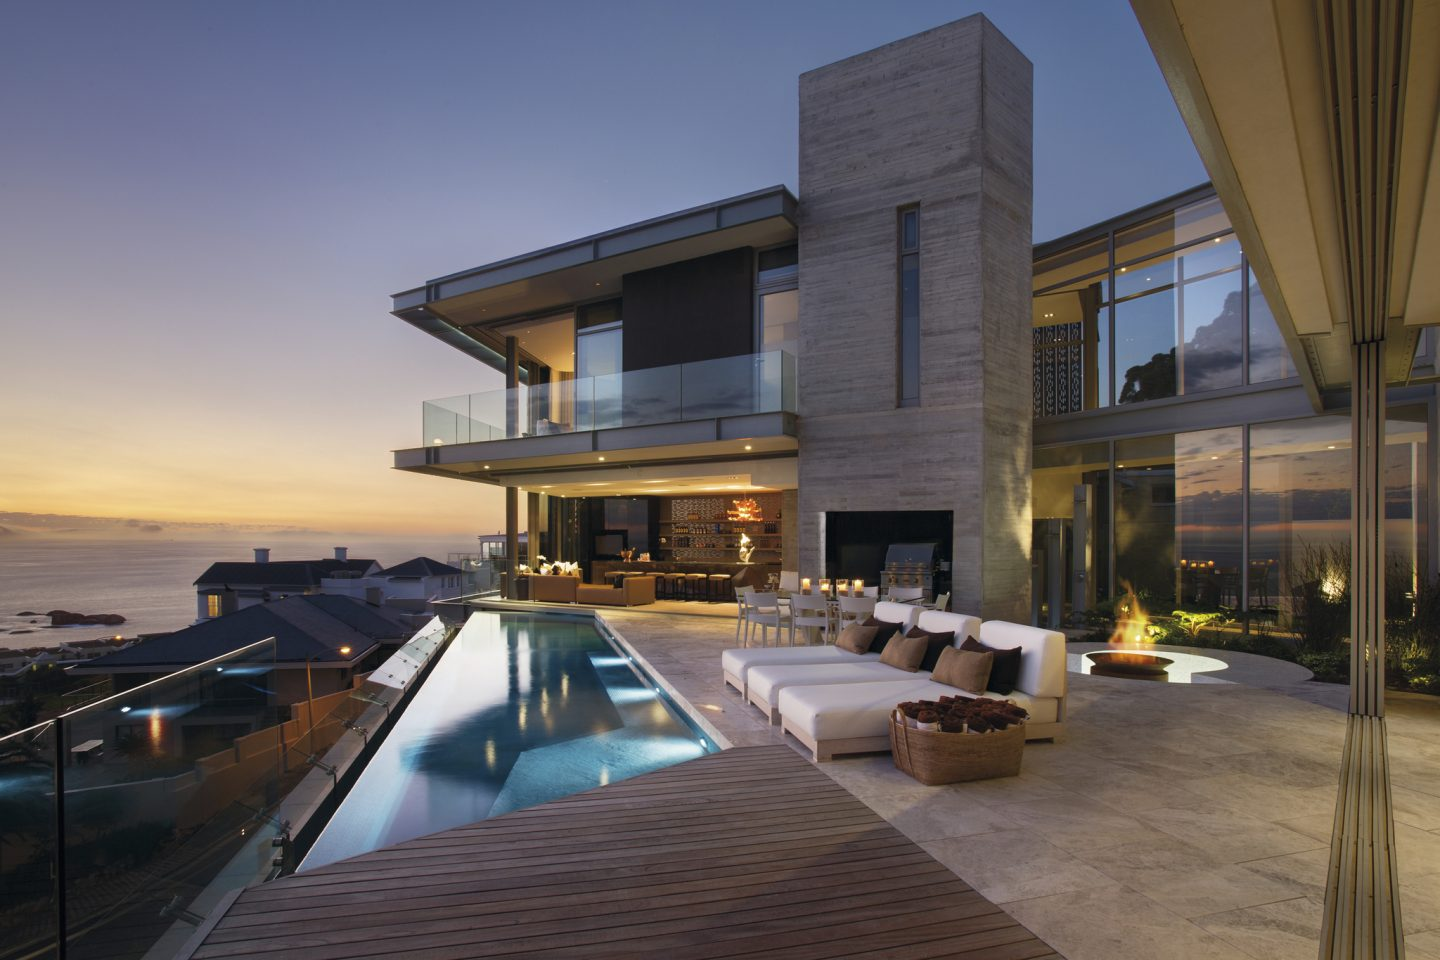 Contemporary architecture example of house by the sea. #waterfront #beachhouse #modern #contemporary #architecture